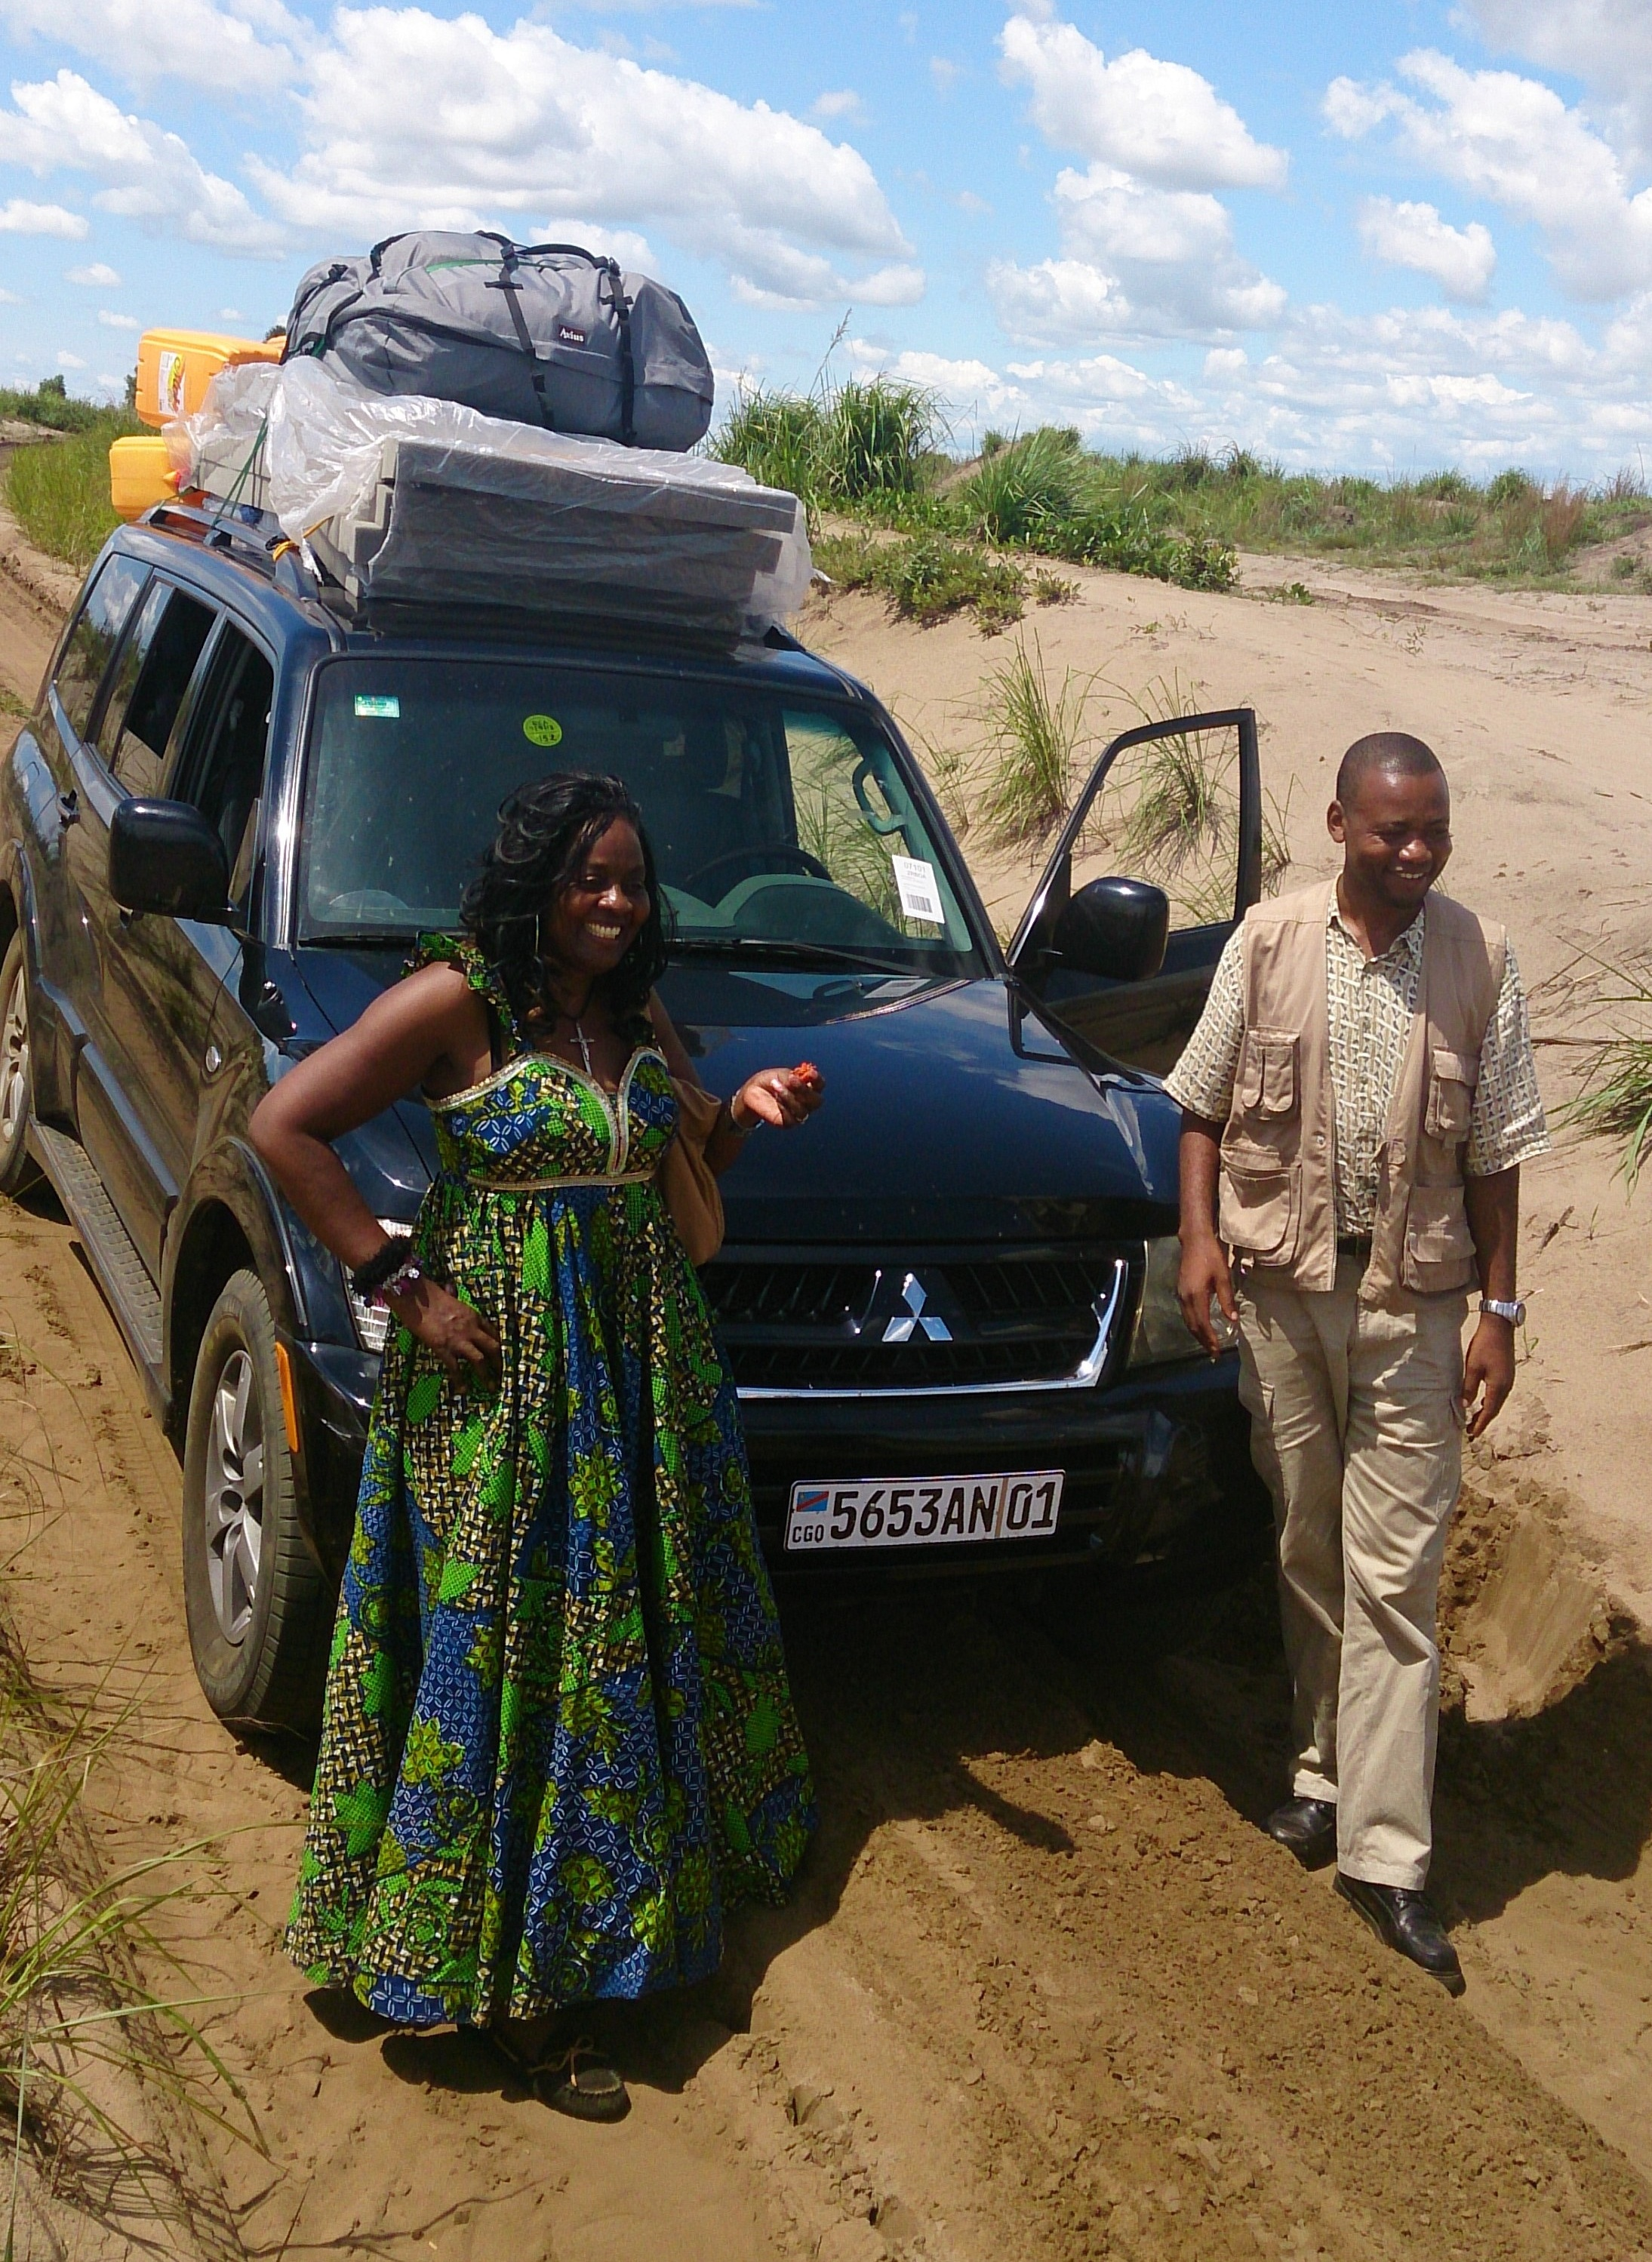 Kinshasa-Kandale-13 hrs (4x4 Vehicle with overnight in Kikwit)